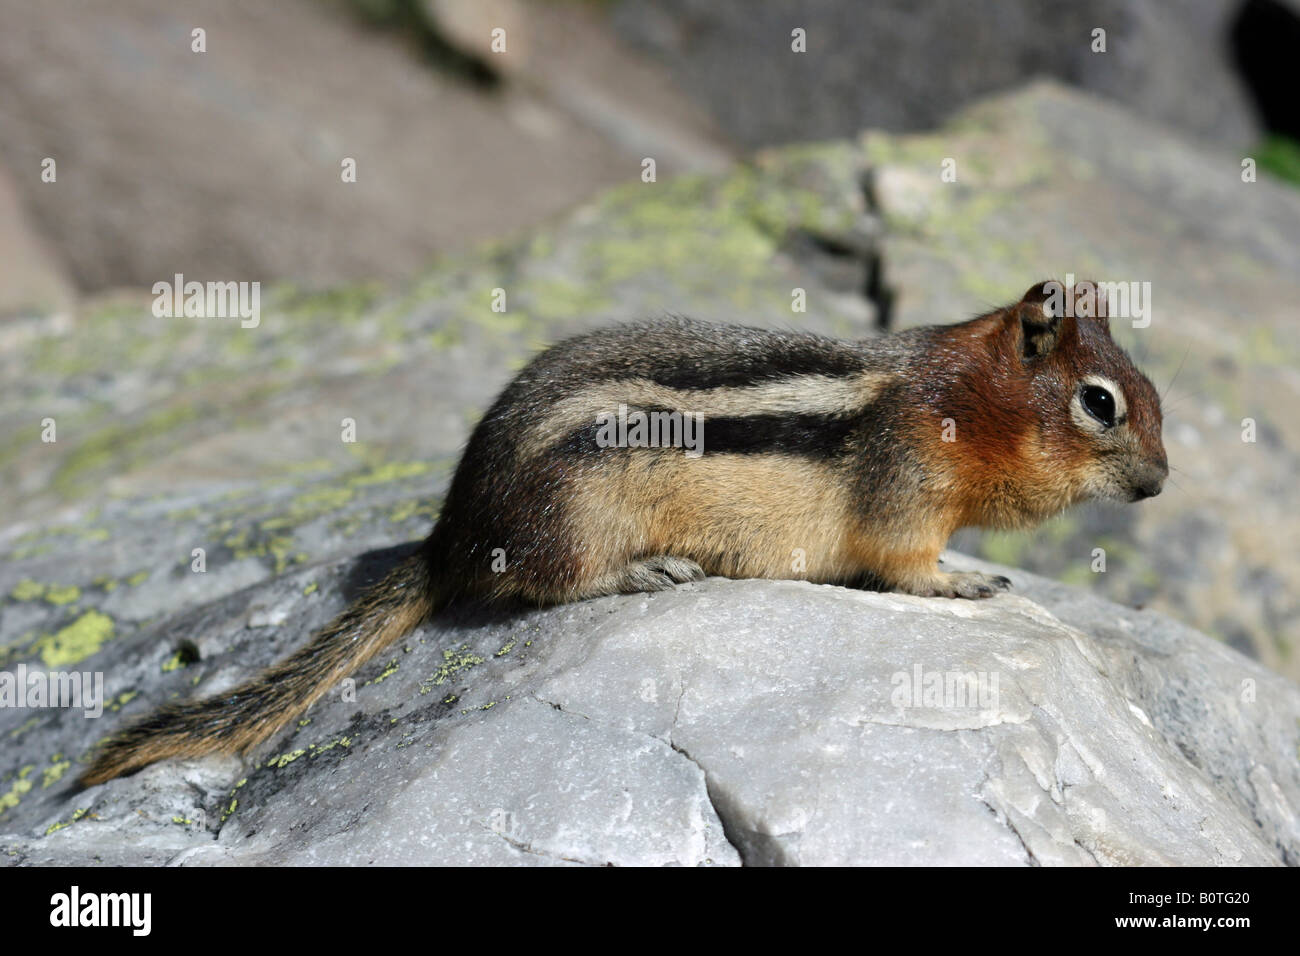 Golden-mantled ground-squirrel resting in the sun on a rock - Stock Image